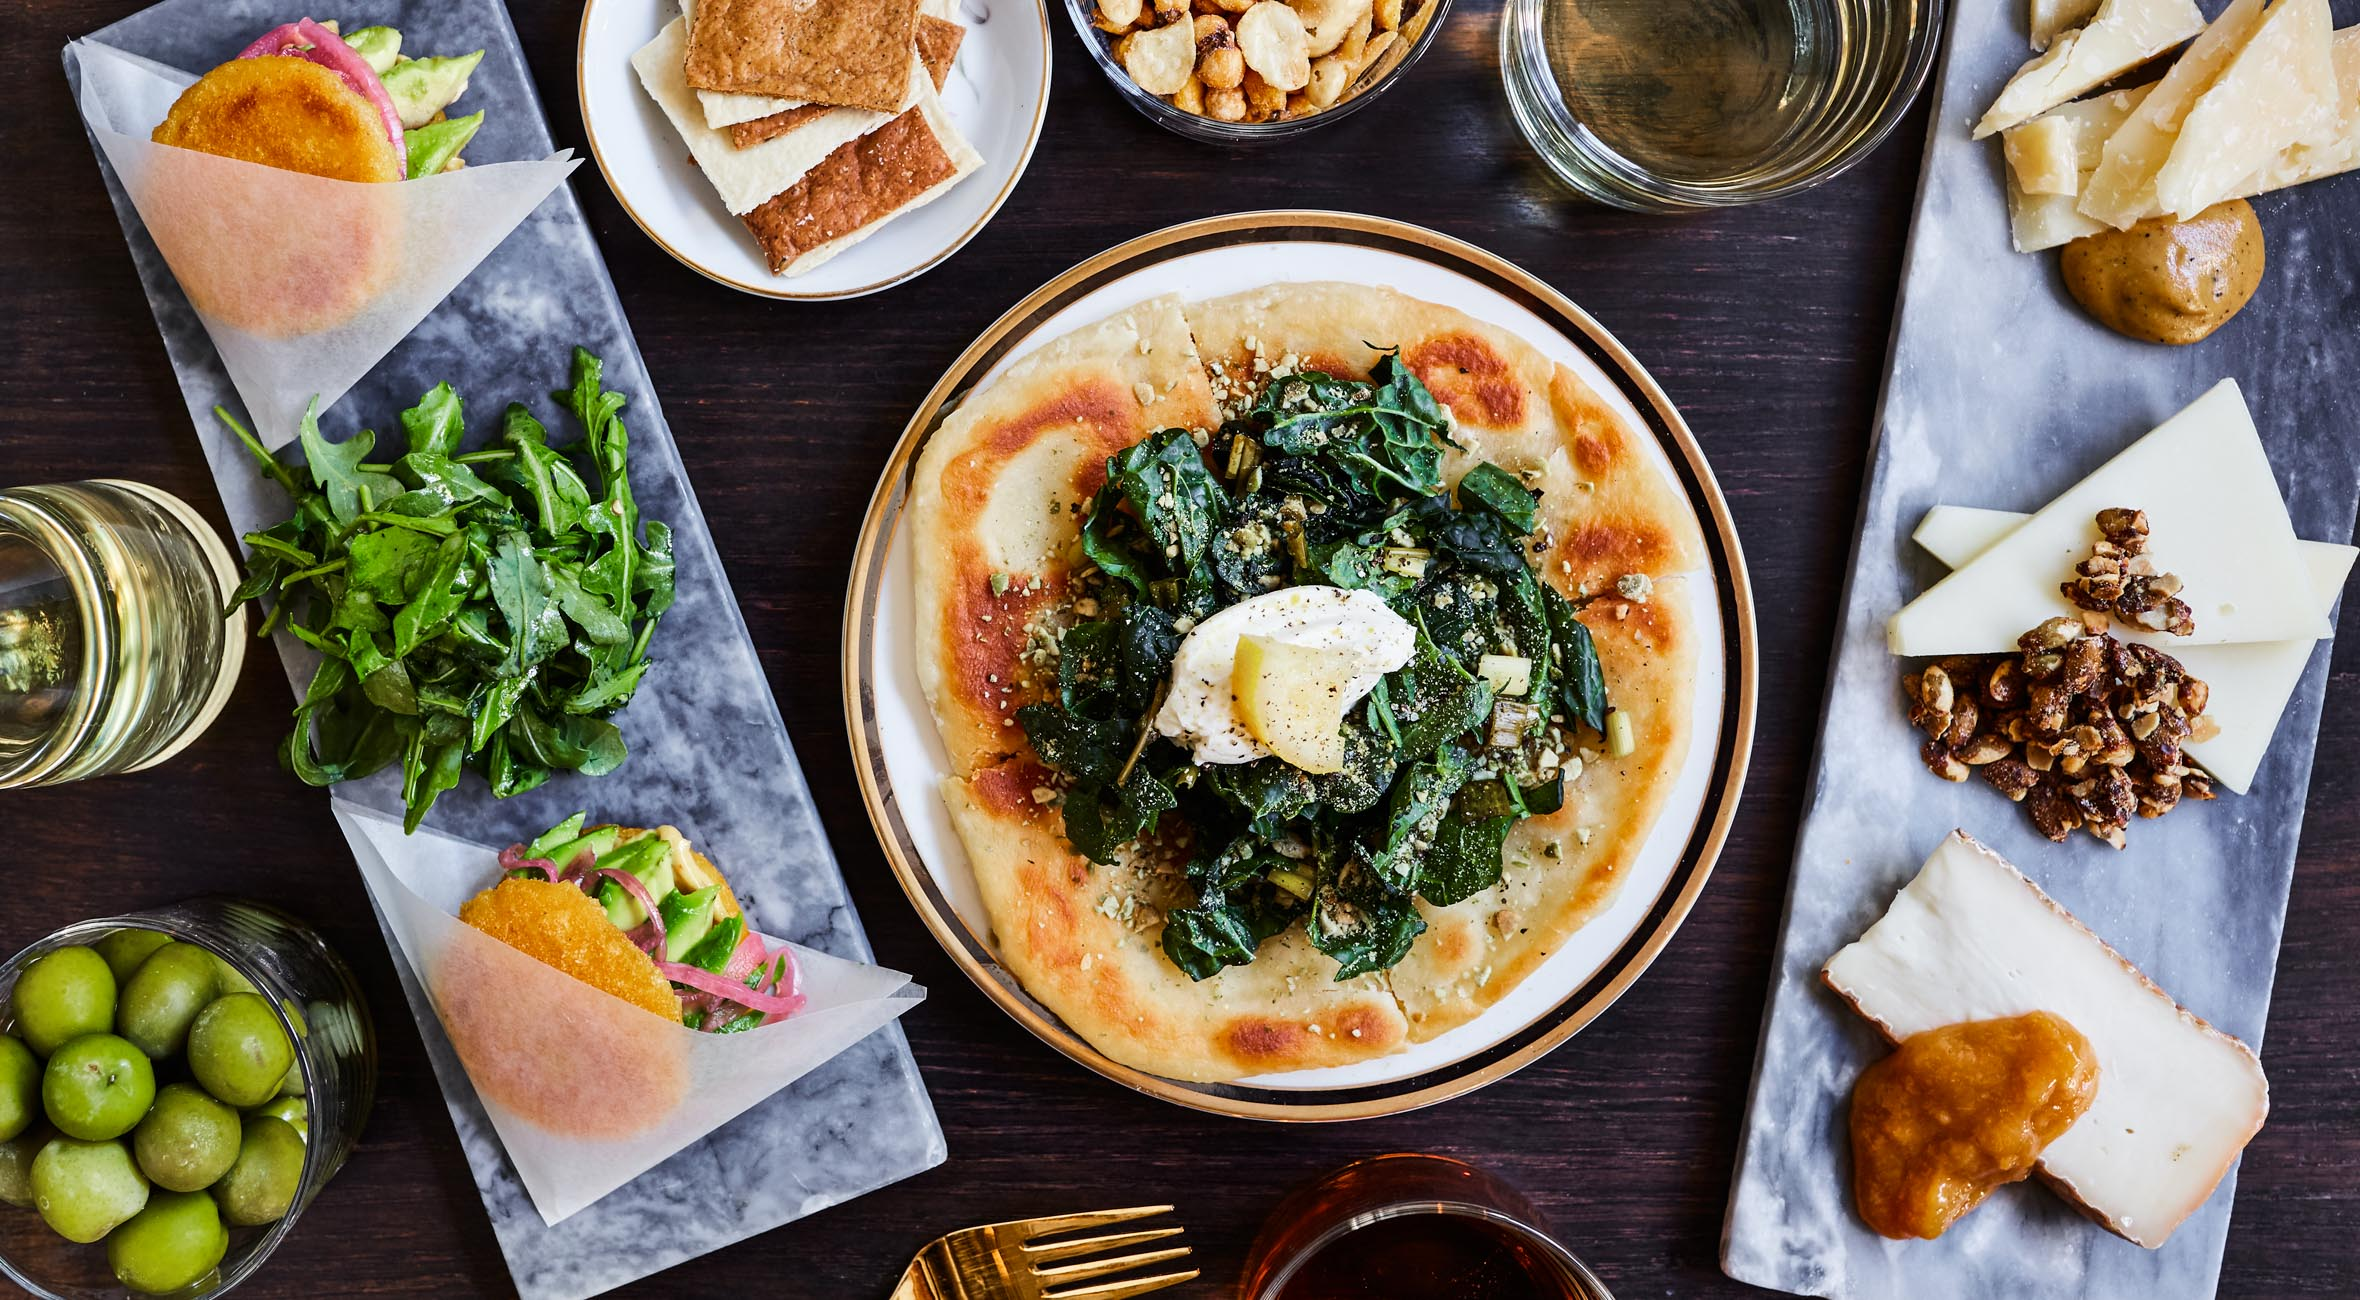 Pick Whatever You Like at Lois in East Village – Enjoy Food & Wine in One of NYC's Best Wine Bars According to The Infatuation